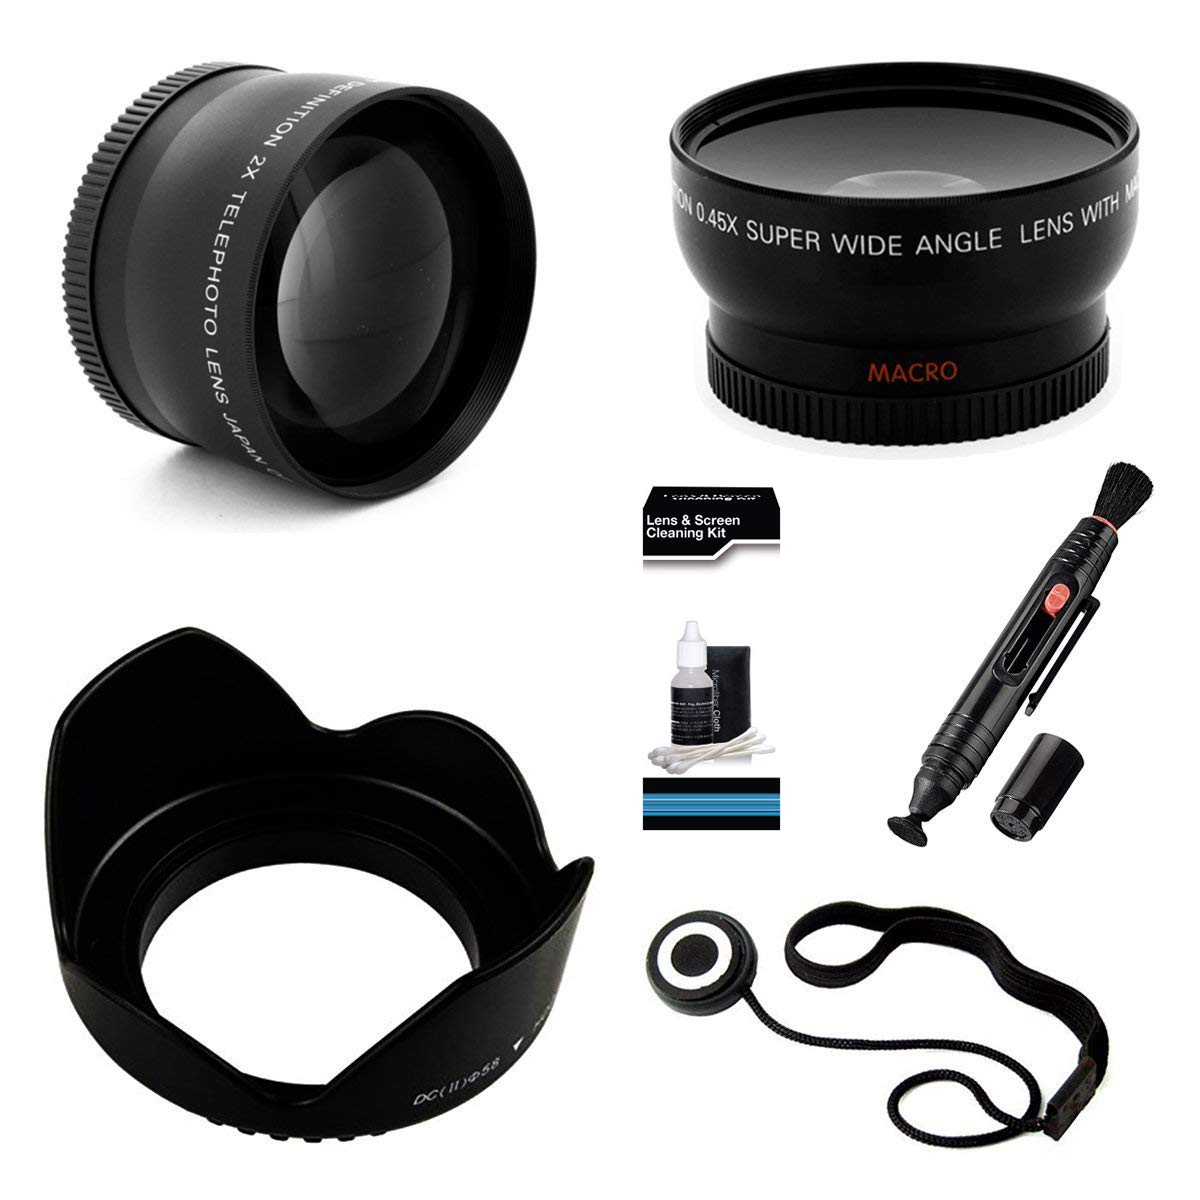 UltraPro 55mm Essential Lens Kit for The Sony FDR-AX53 Camcorder. Bundle Includes 2X Telephoto Lens, 0.45x HD Wide Angle Lens w/Macro, Flower Tulip Lens Hood & UltraPro Accessory Set